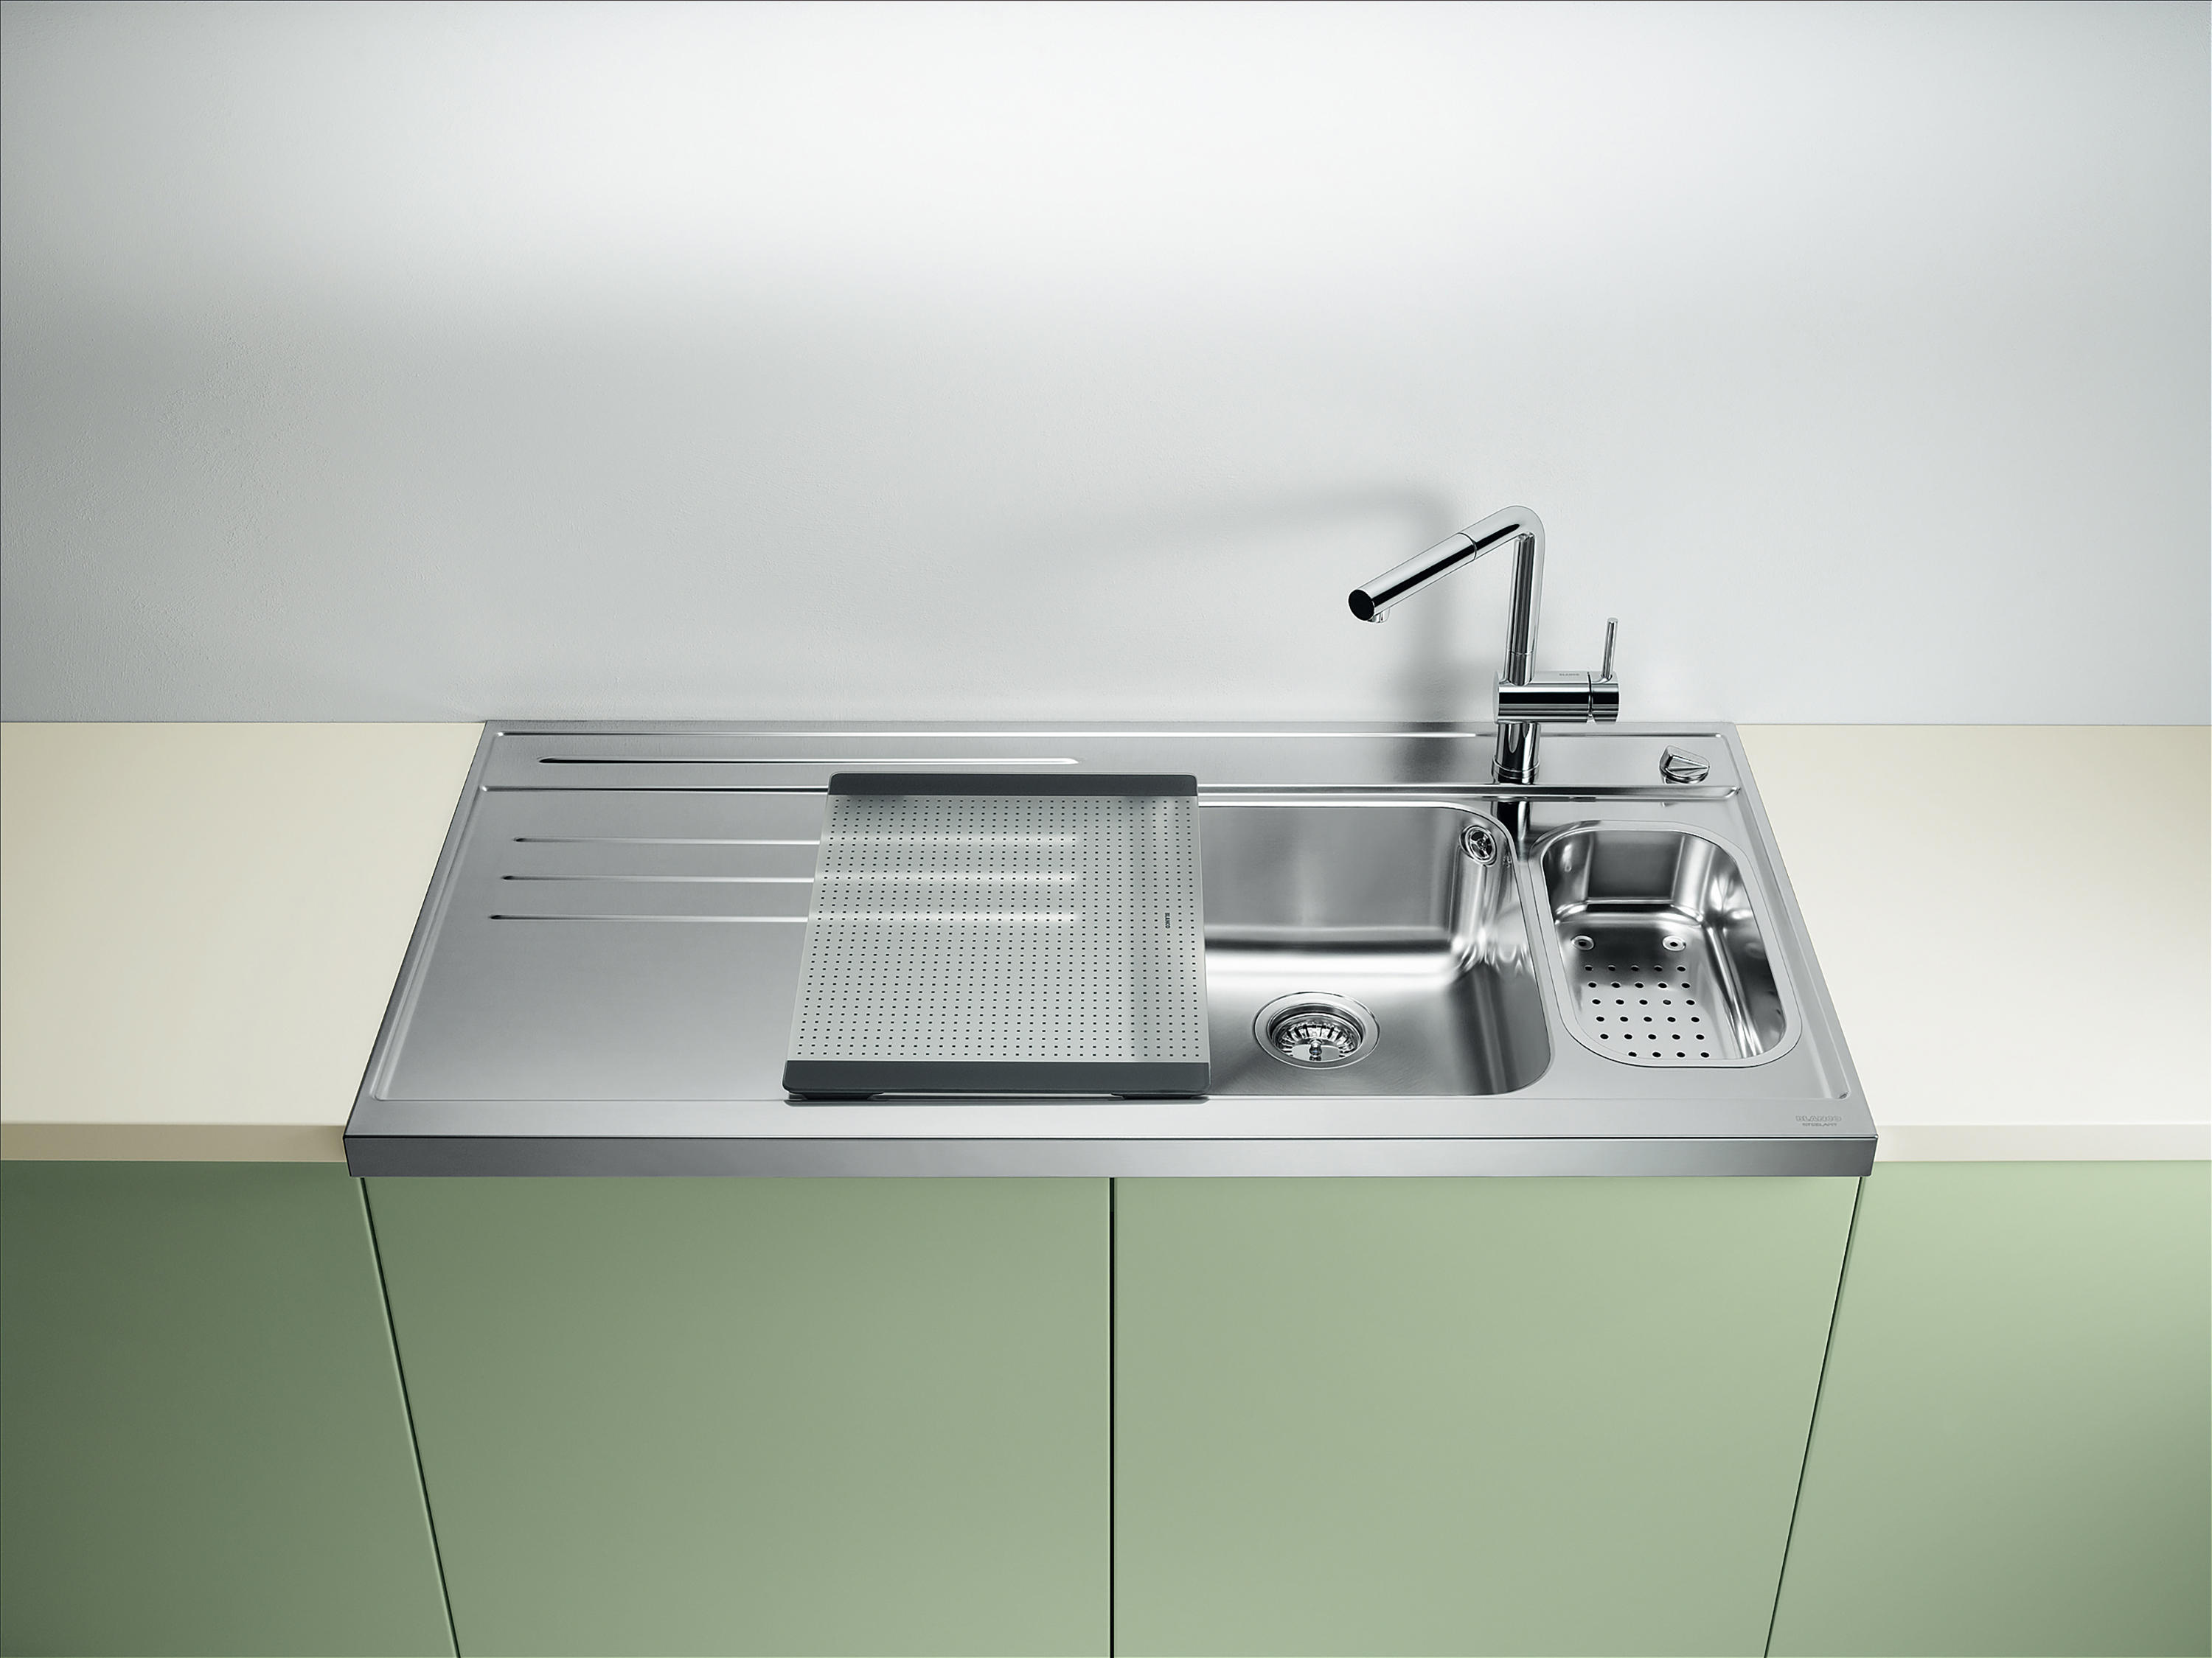 blanco axis ii 45 s if kitchen sinks from blanco. Black Bedroom Furniture Sets. Home Design Ideas